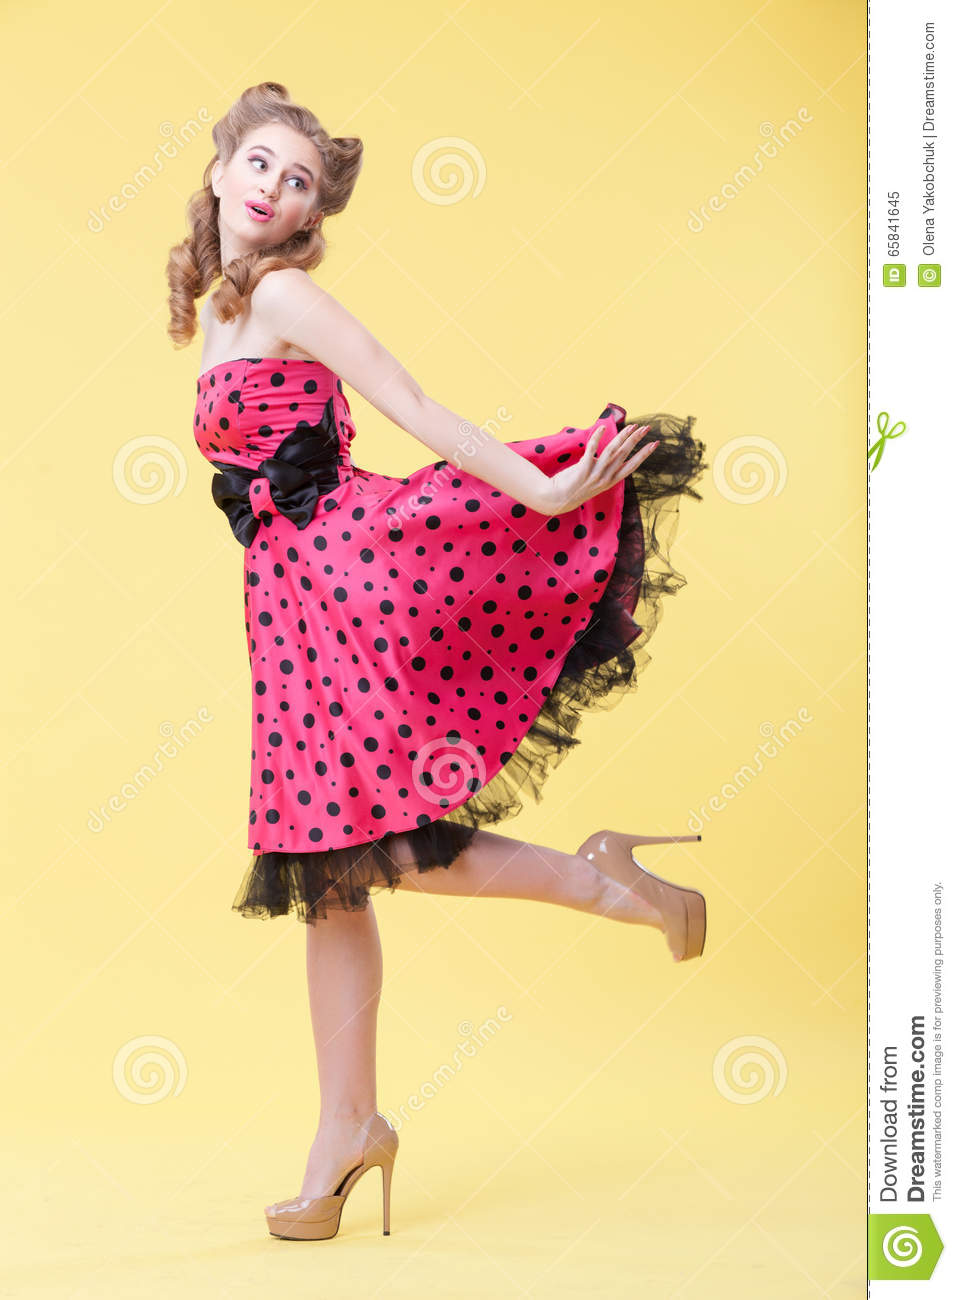 Cheerful Pin-up Girl Is Flirting With You Stock Image - Image of ... 327cc38c4905